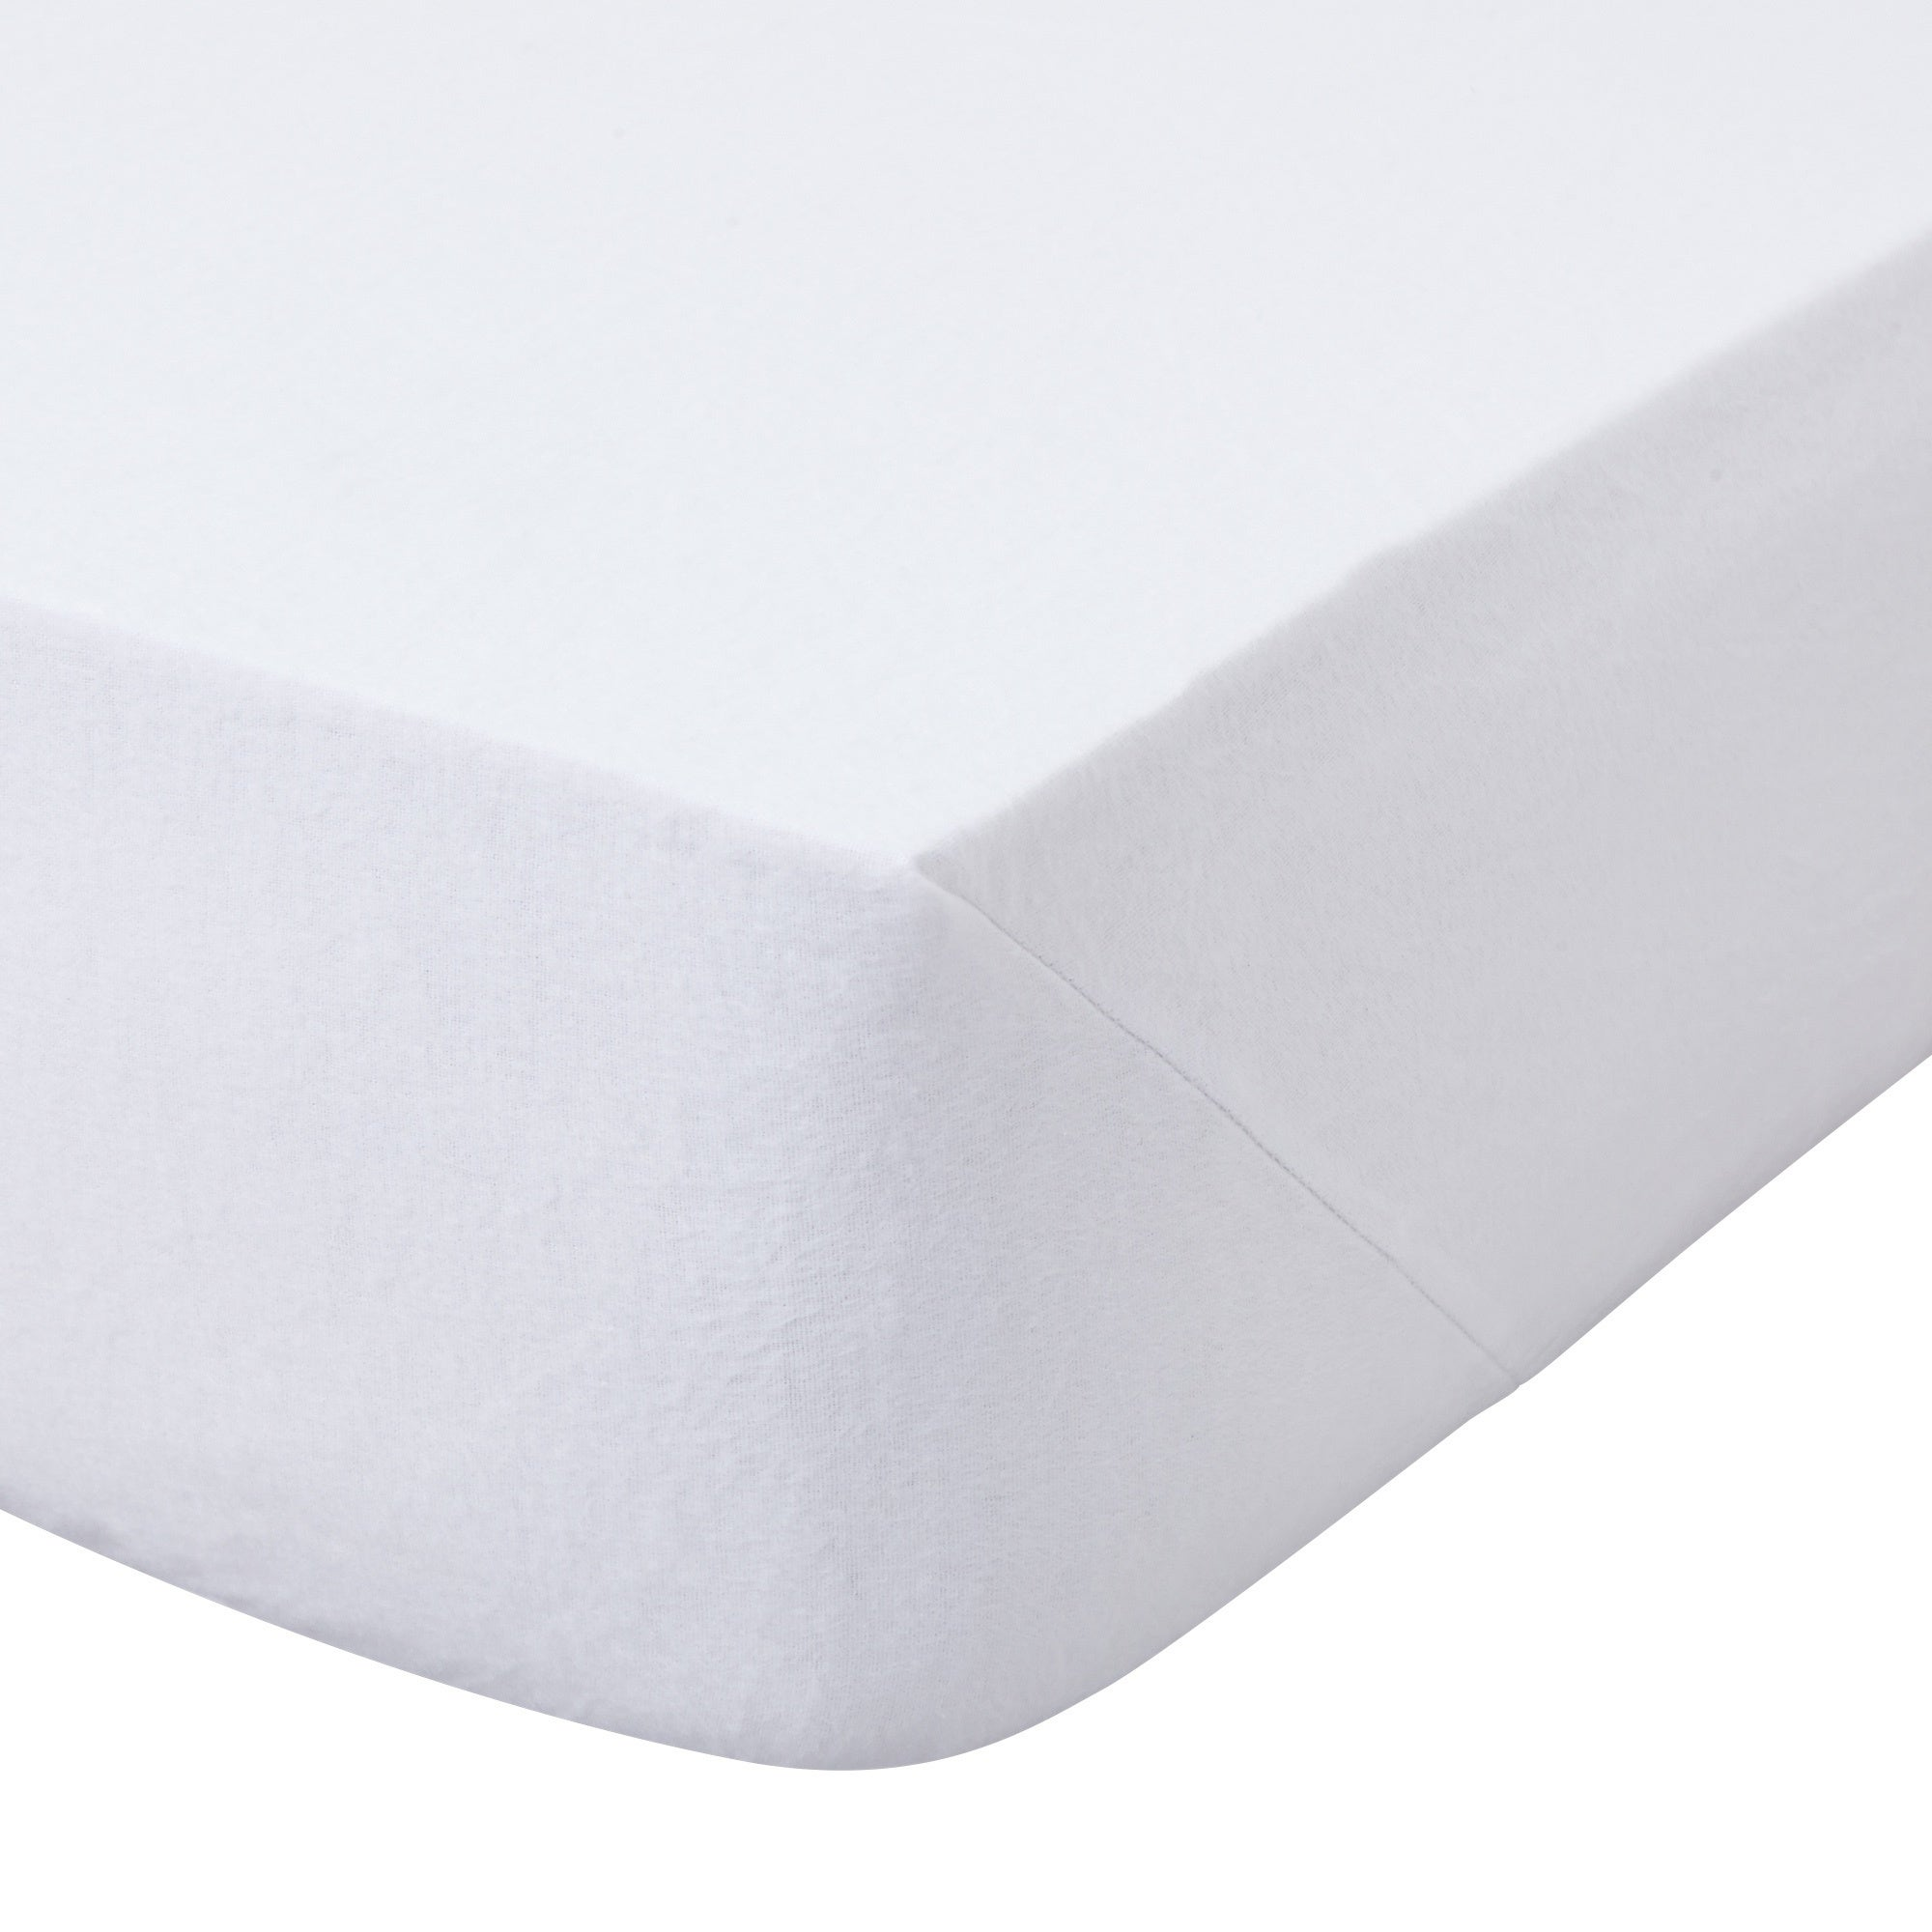 Image of 100% Brushed Cotton 25cm White Fitted Sheet White